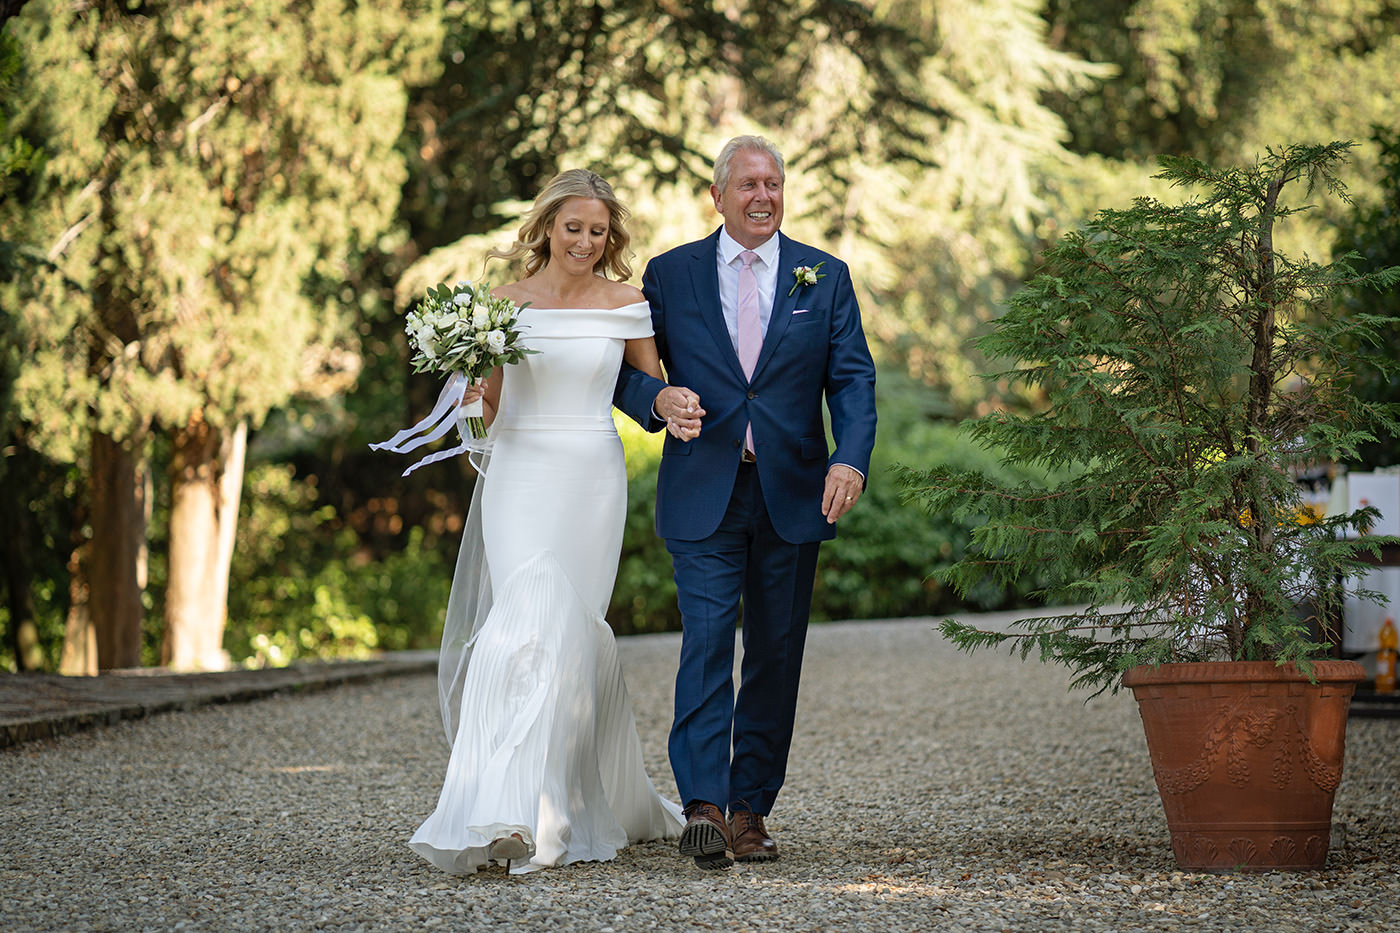 Duccio Argentini: Tuscan Wedding Photo Shoots At Palagio Castle. Bride are walking with her father